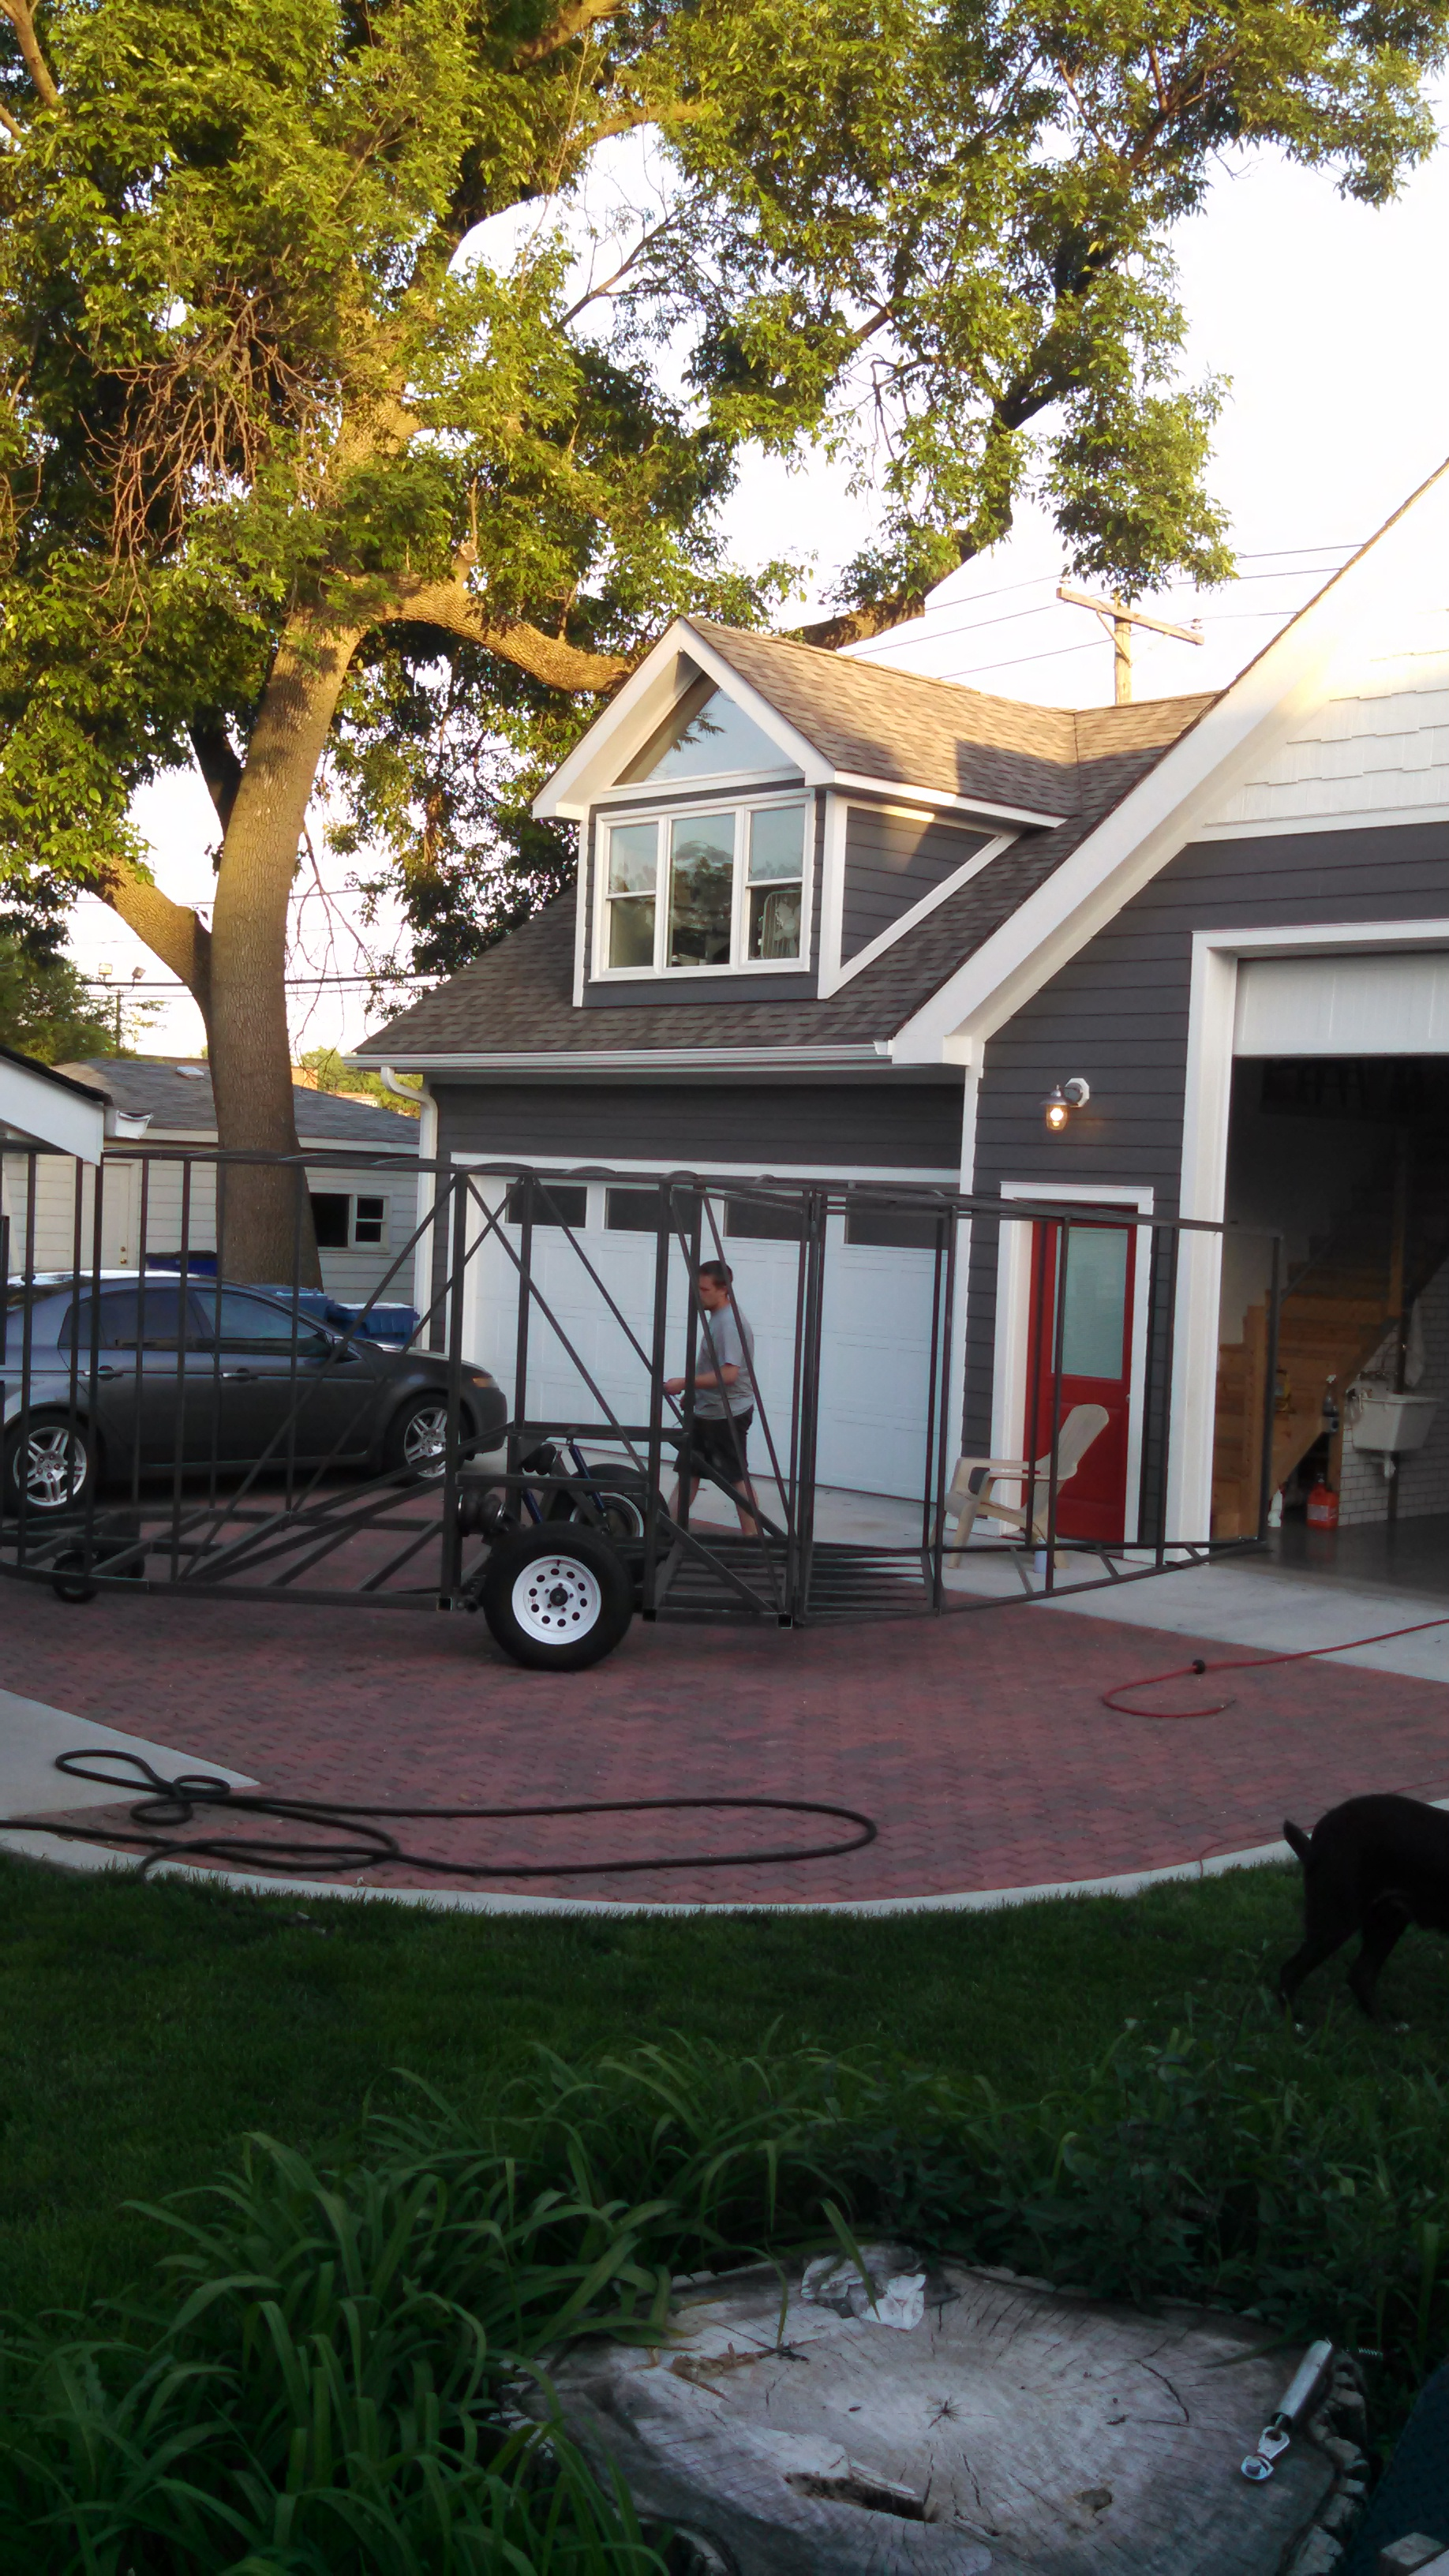 Here is a shot of the next Jabaay creation we'll be featuring here.......Jeremy and Allison's homemade teardrop trailer, while under construction. This shot also shows off the gorgeous permeable pavers.